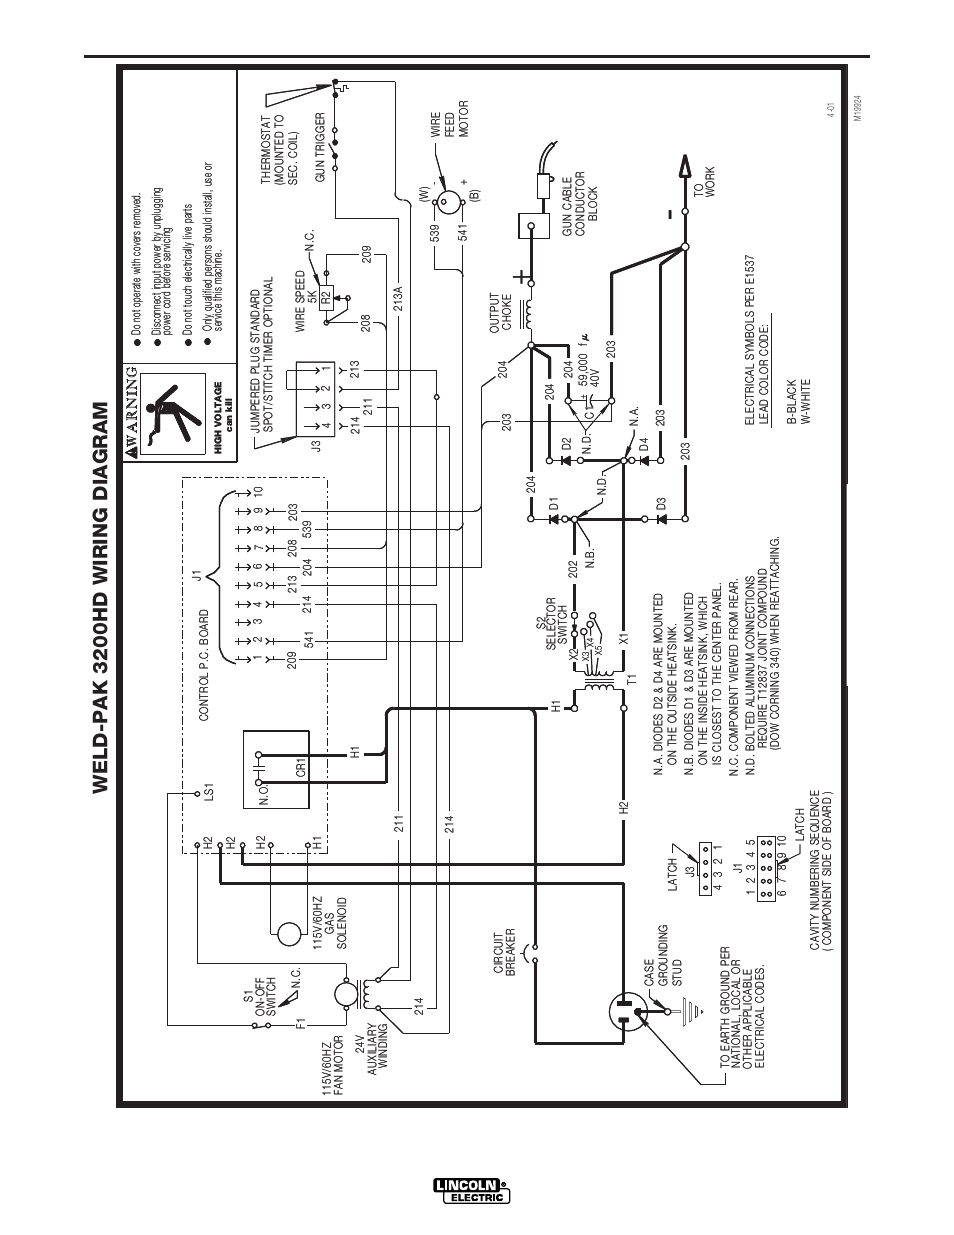 Lincoln 225 Arc Welder Wiring Diagram. Lincoln Electric